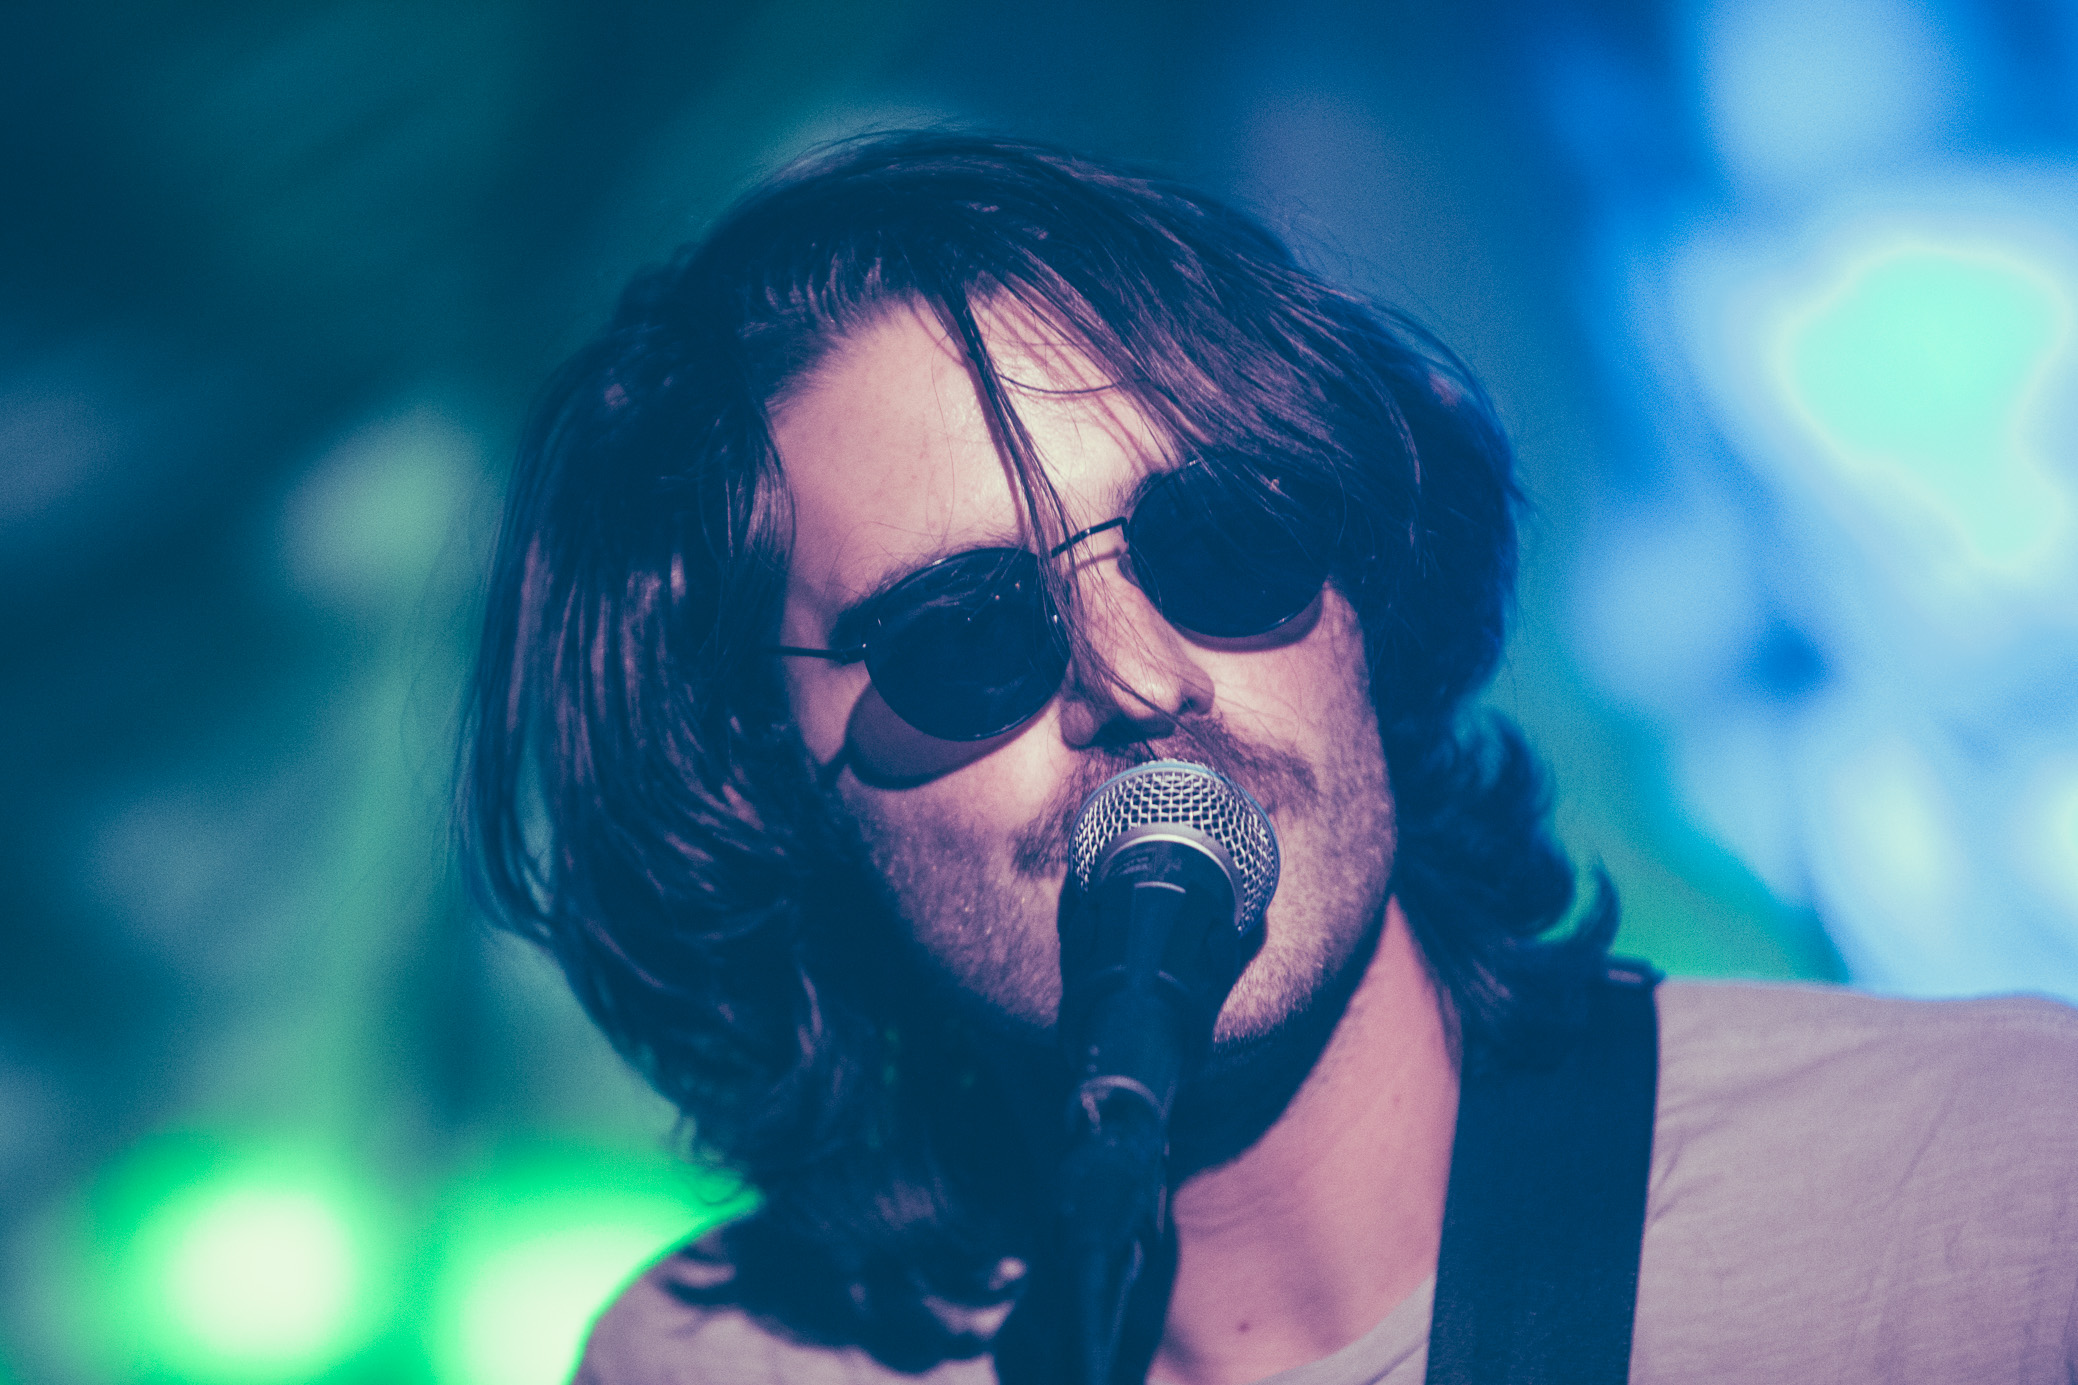 Jacob Ewald of Slaughter Beach, Dog performs in concert at Saturn Birmingham in Birmingham, Alabama on September 2nd, 2018. (Photo by David A. Smith/DSmithScenes)